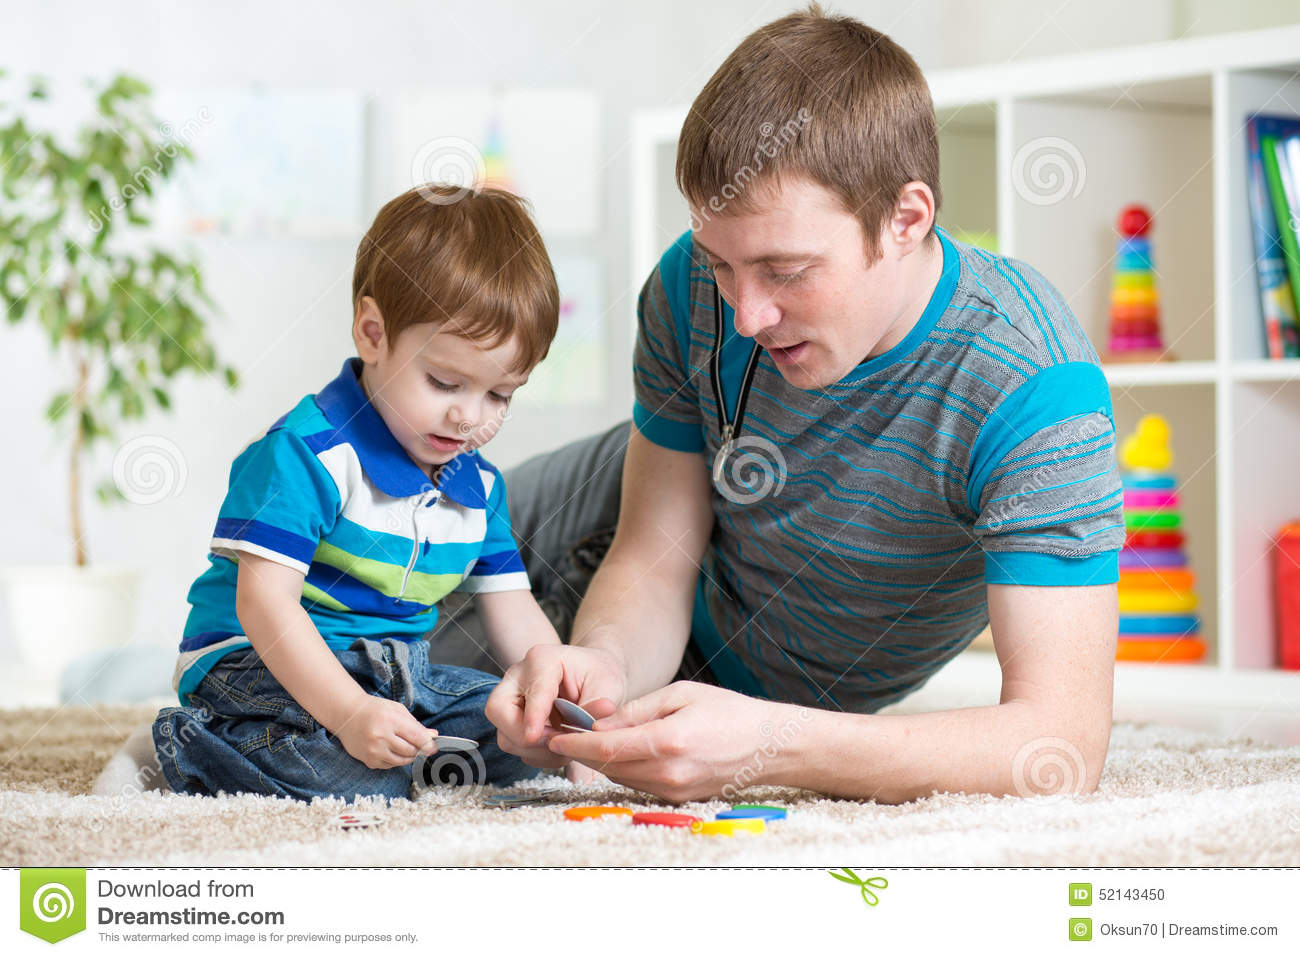 Boy Toys For Dads : Dad and kid playing toys at home stock photo image